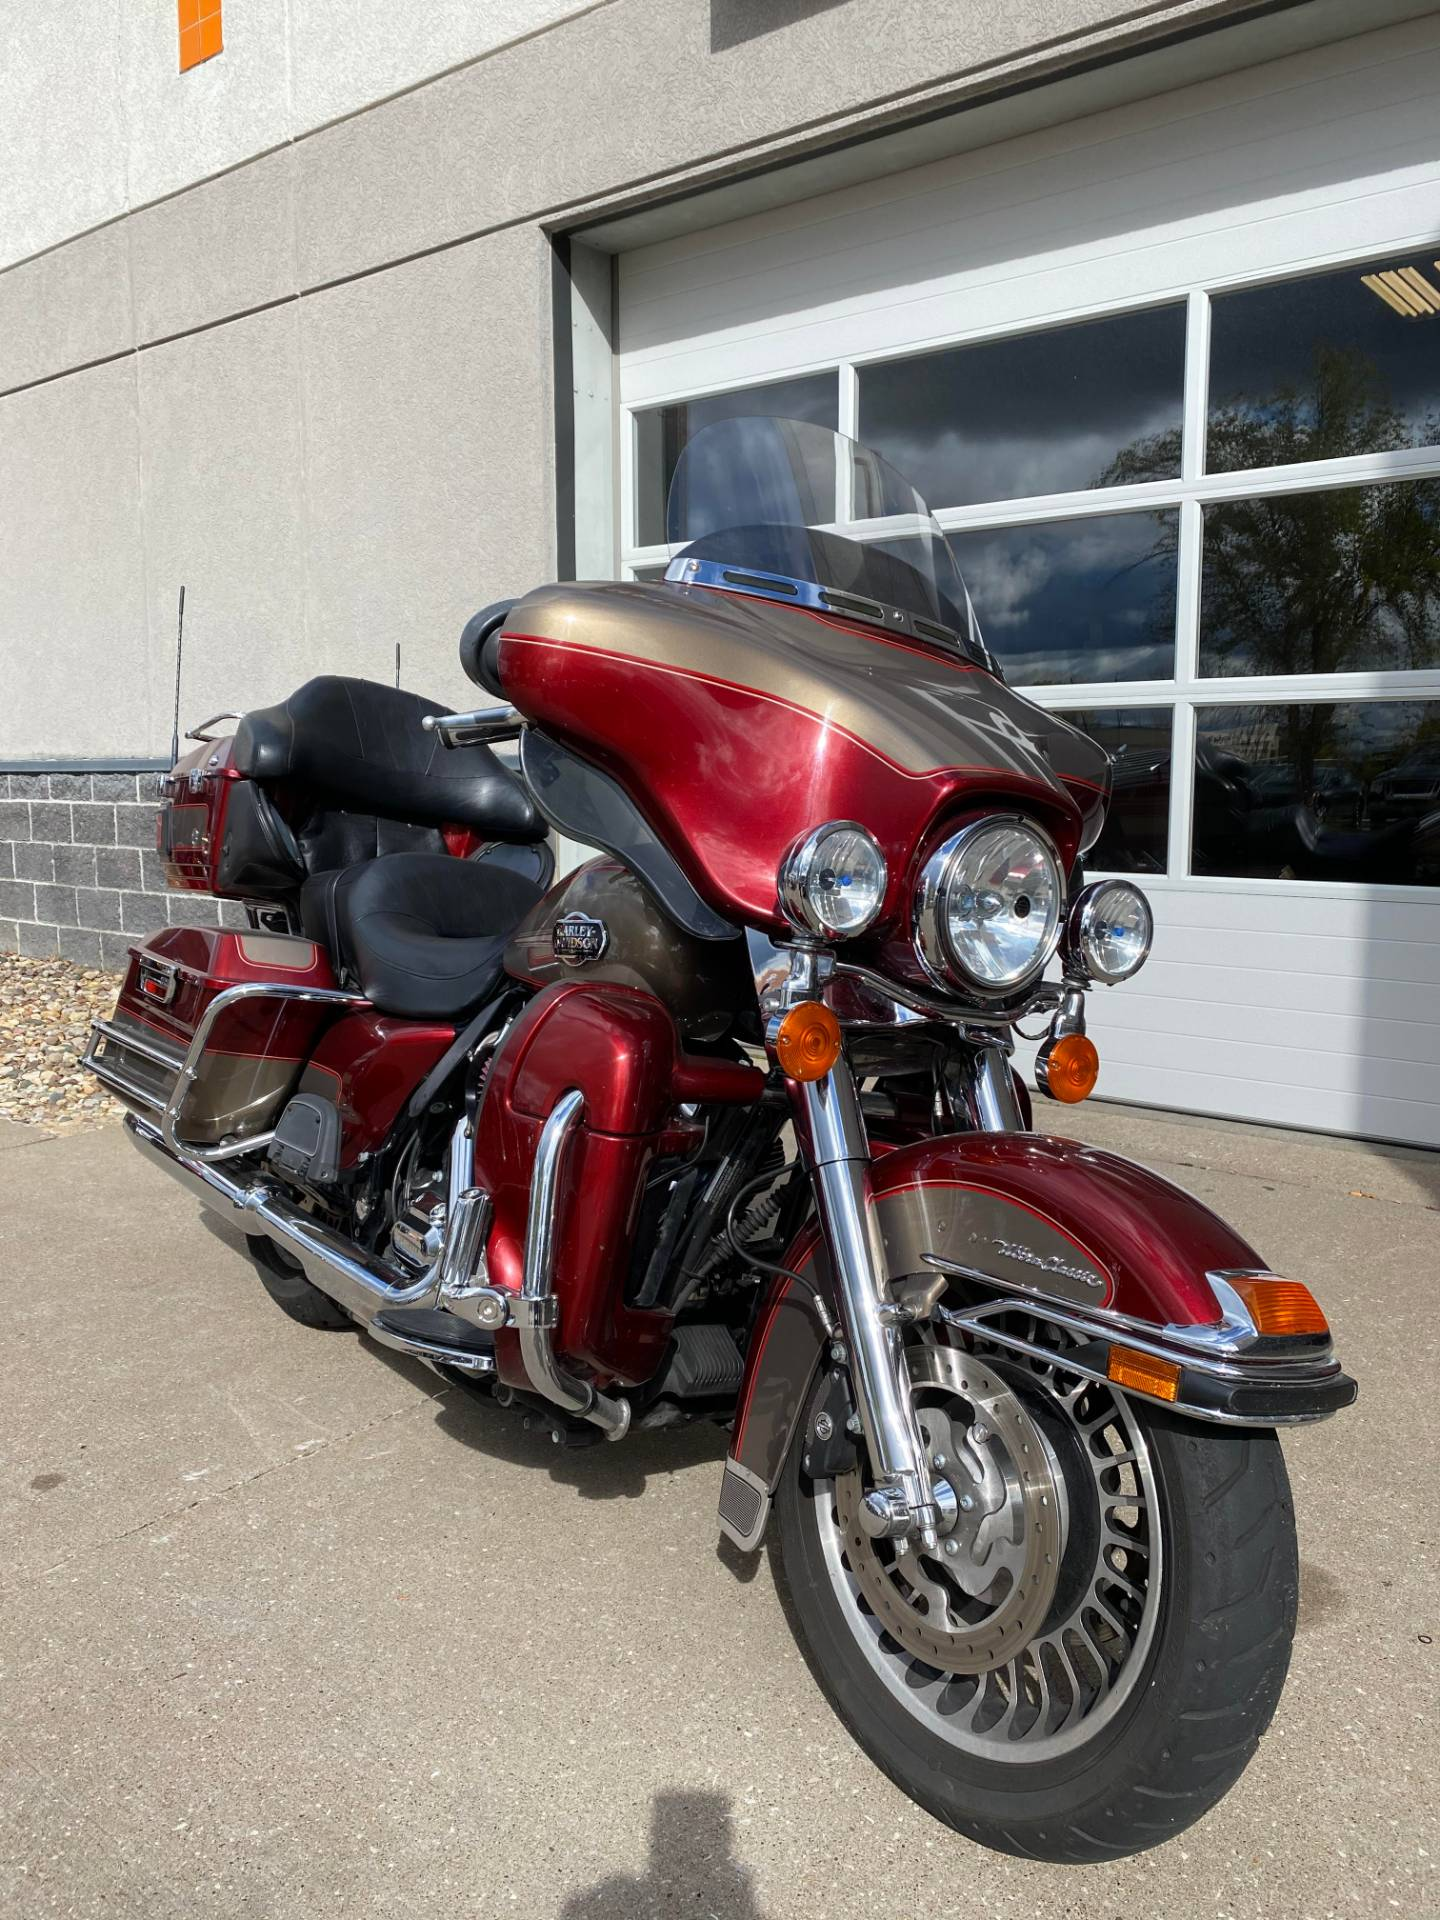 2009 Harley-Davidson ELECTRA GLIDE ULTRA CLASSIC in Davenport, Iowa - Photo 1